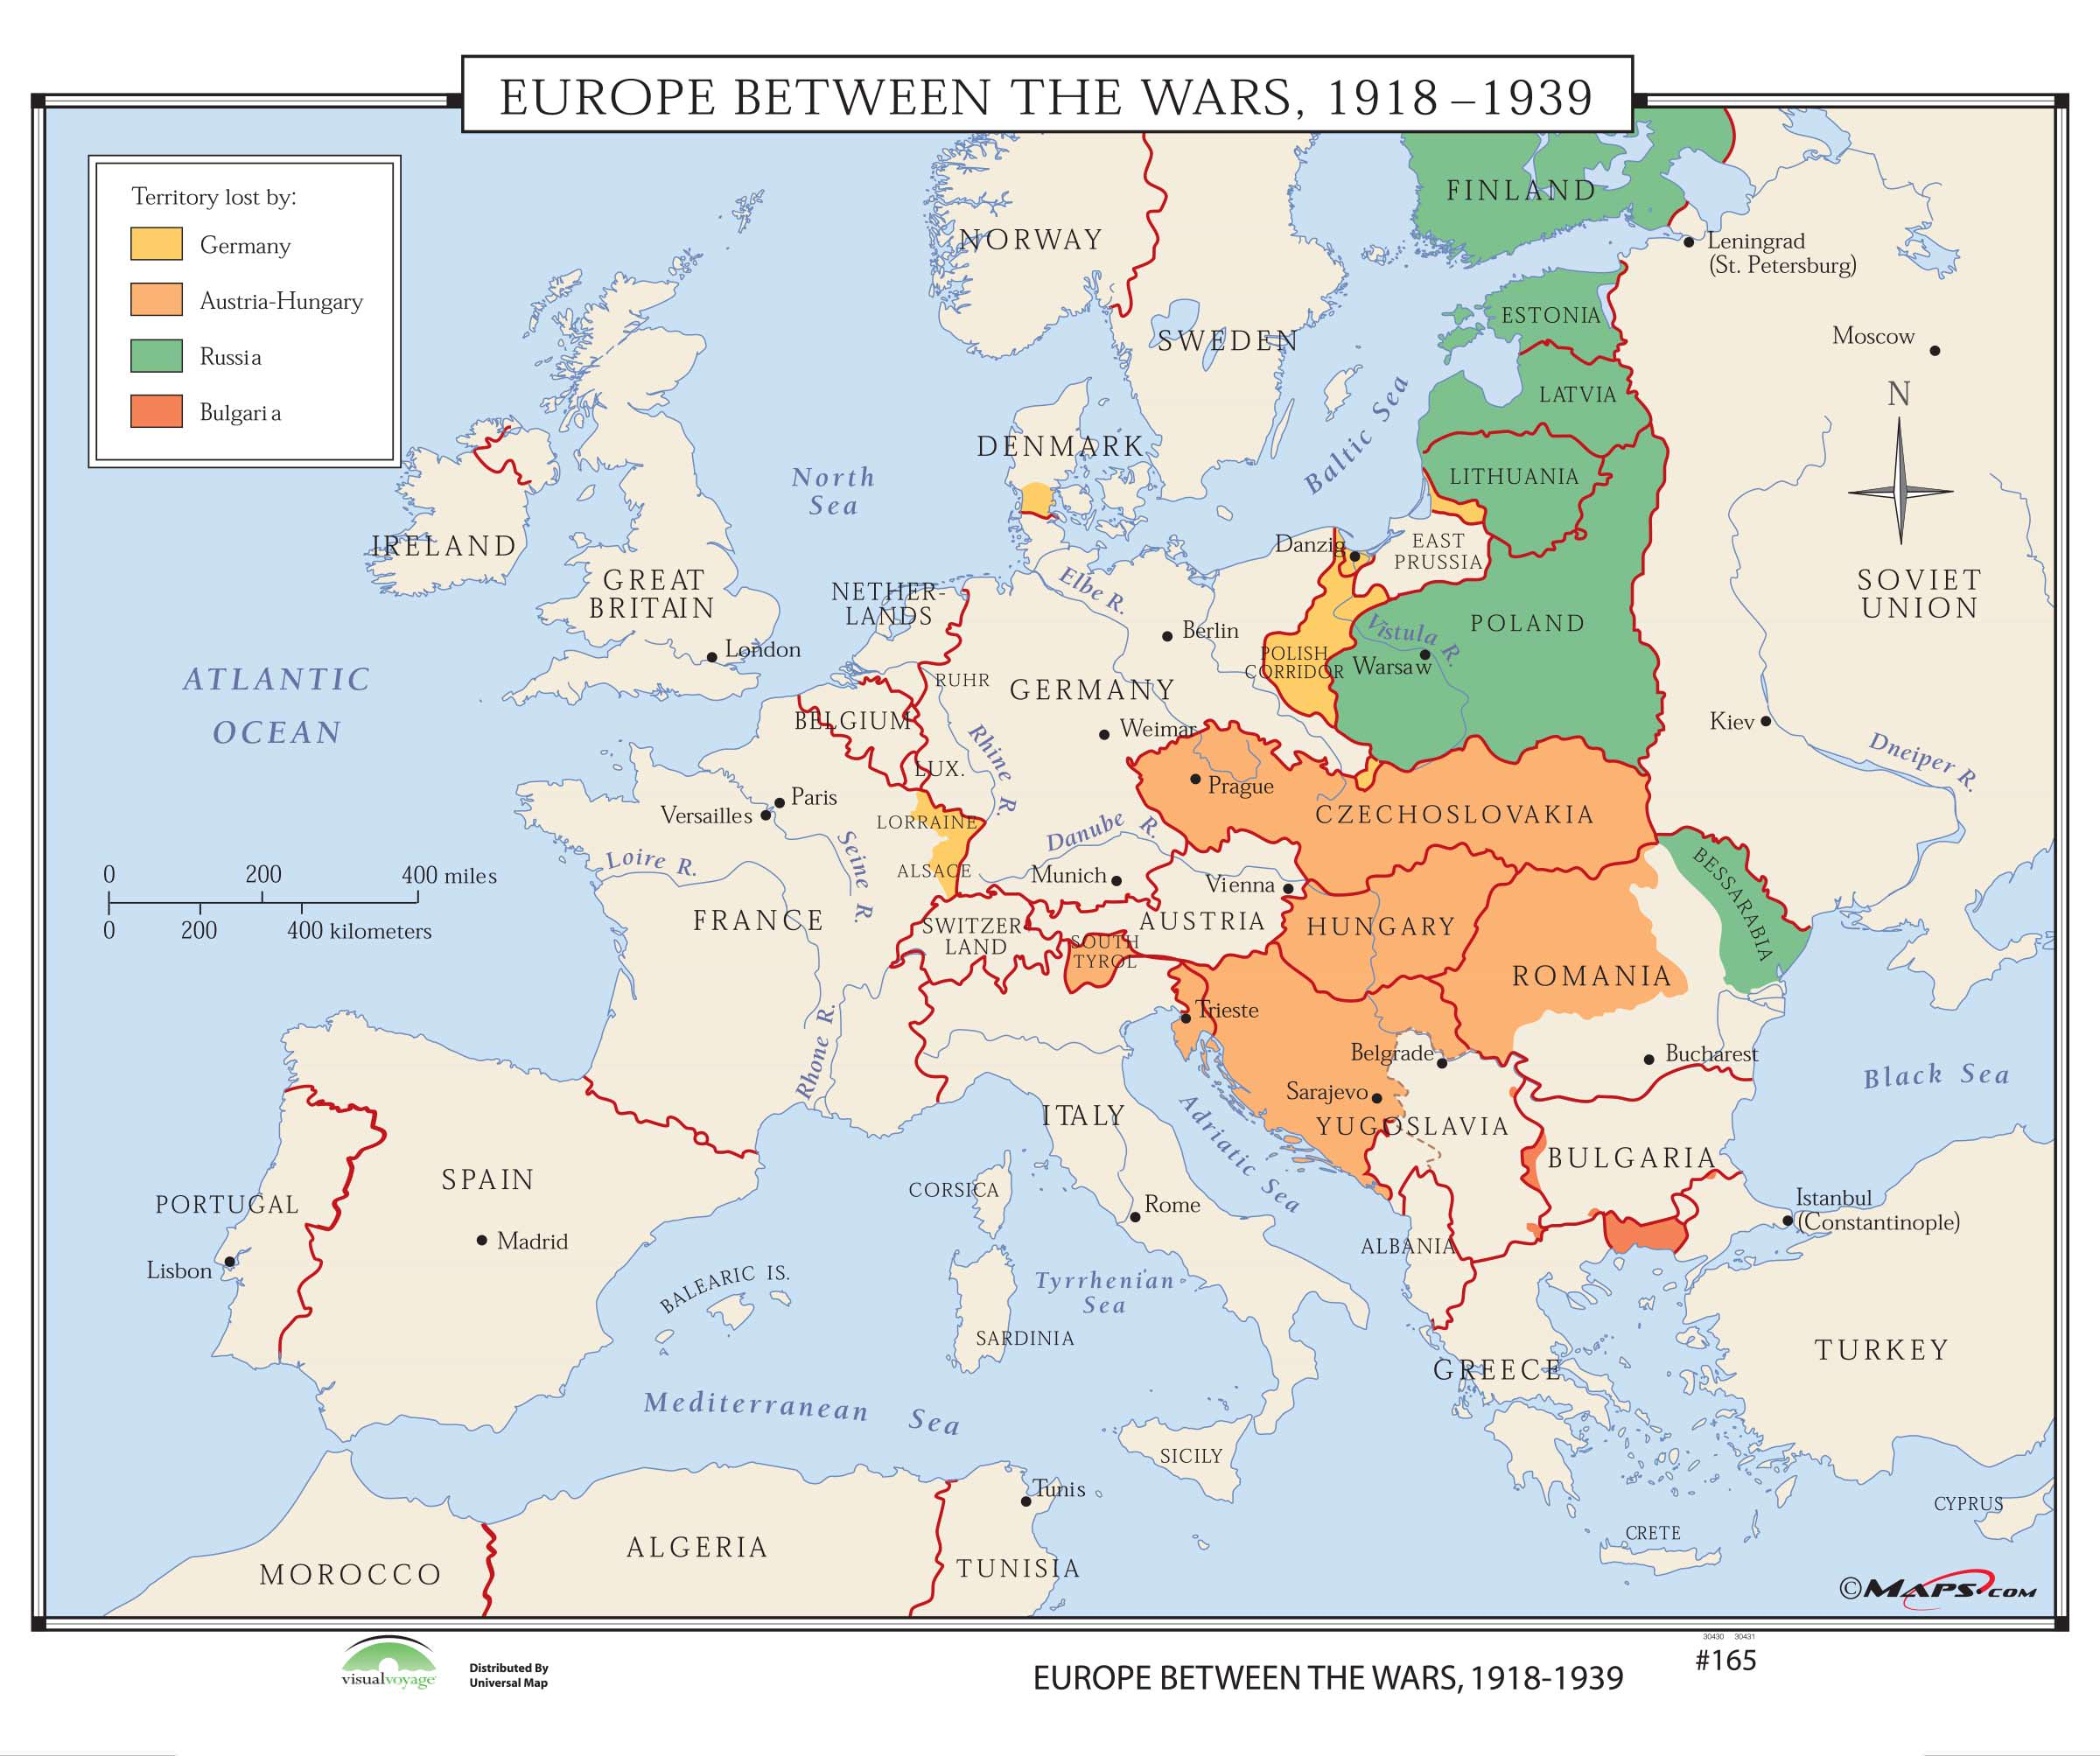 165 Europe Between the Wars 1918-1939 – KAPPA MAP GROUP